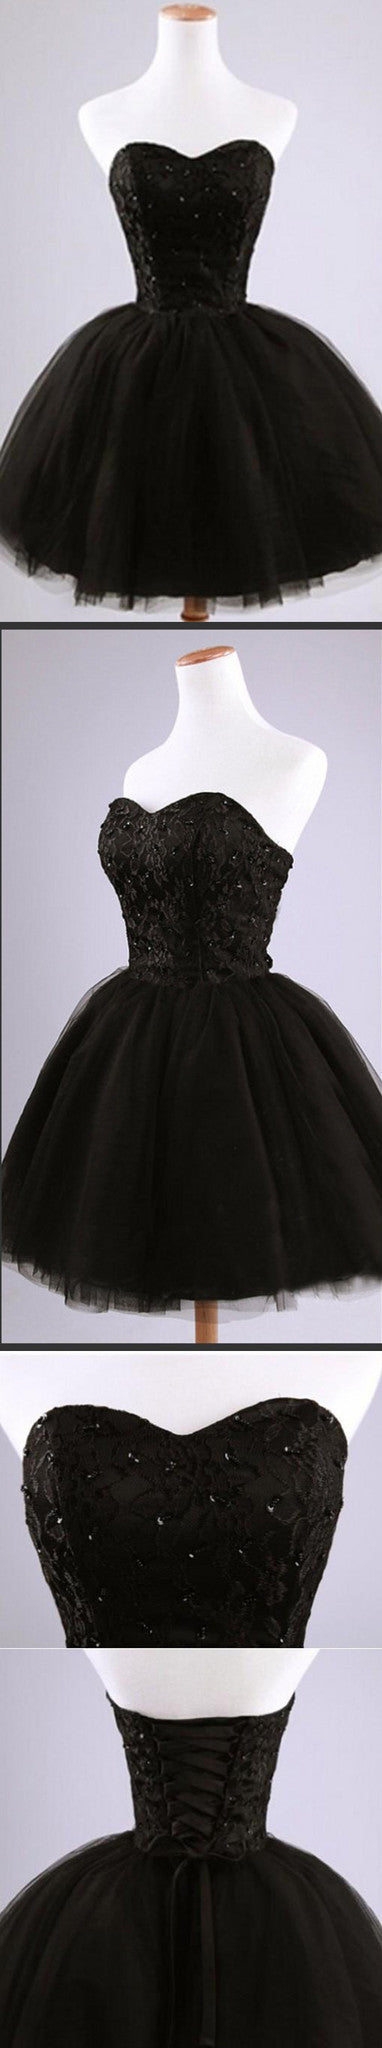 Sweetheart Tulle Lace Little Black Short Homecoming Dresses, BG51440